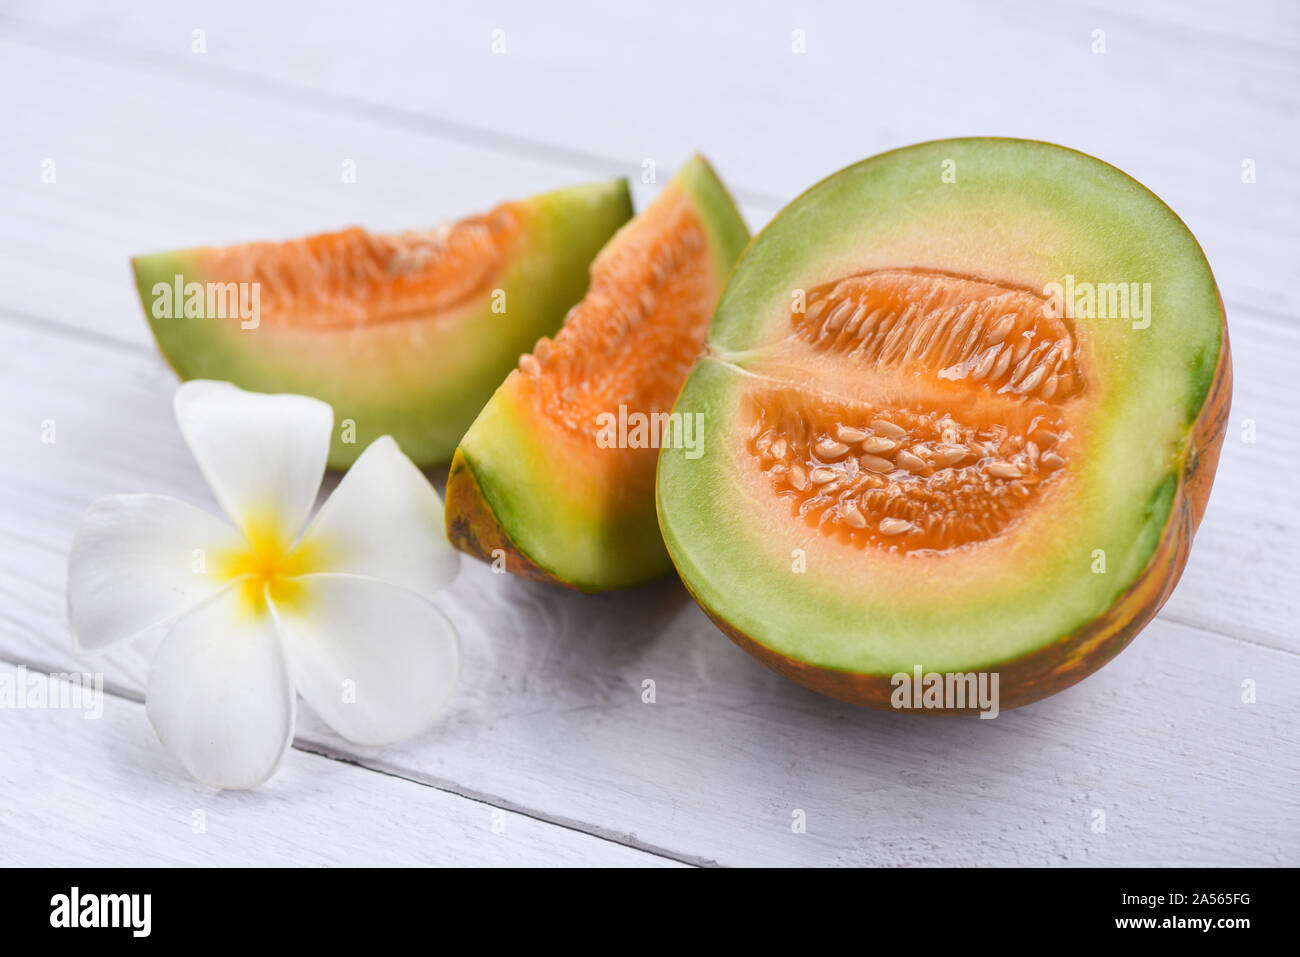 Sliced Cantaloupe Thai Tropical Fruit Asian And Flower On Wooden Background Cantaloupe Melon Muskmelon Cucurbitaceae Stock Photo Alamy The cantaloupe, rockmelon (australia and new zealand), sweet melon, or spanspek (south africa) is a melon that is a variety of the muskmelon species (cucumis melo) from the family cucurbitaceae. https www alamy com sliced cantaloupe thai tropical fruit asian and flower on wooden background cantaloupe melon muskmelon cucurbitaceae image330206340 html